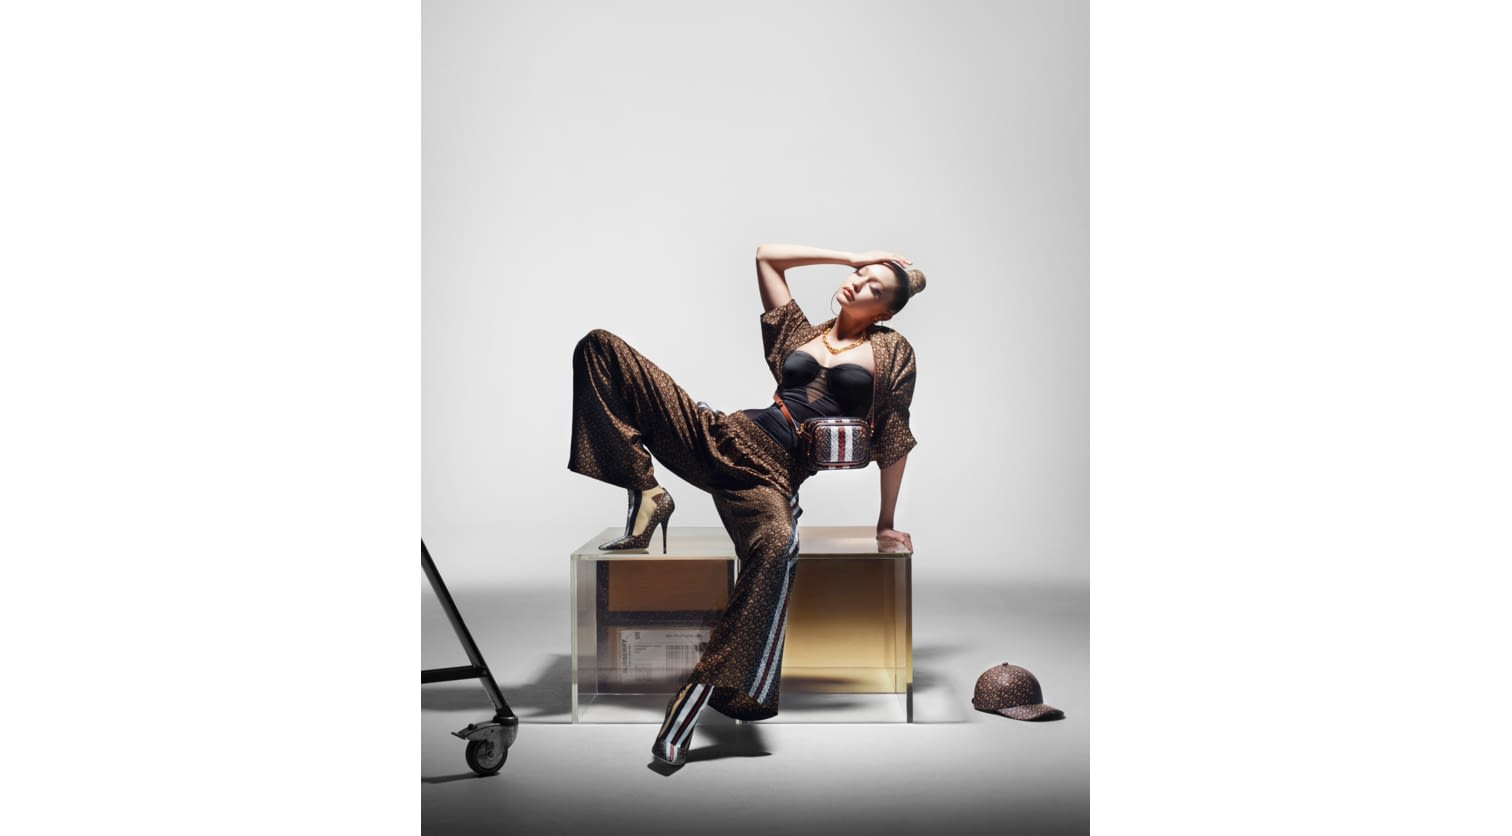 Burberry Debuts Monogram Collection Through A Campaign Starring Gigi Hadid c Courtesy of Burberry _ Nick Knight_004.jpg